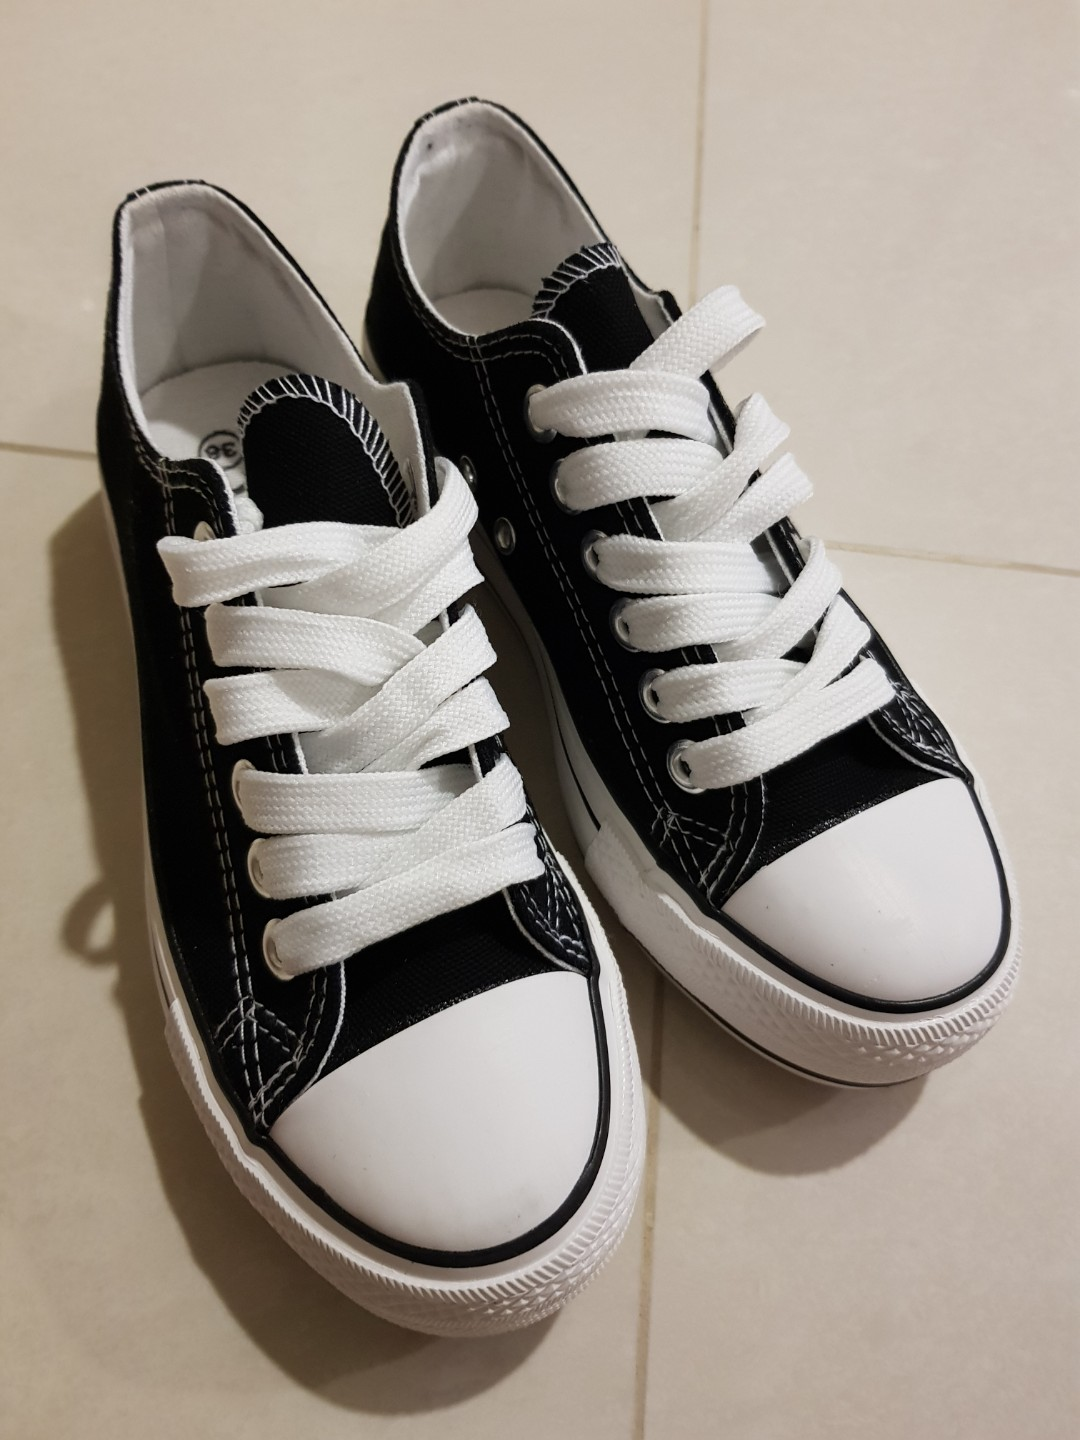 532d22255243 Like Converse High Sole Black Canvas Shoes